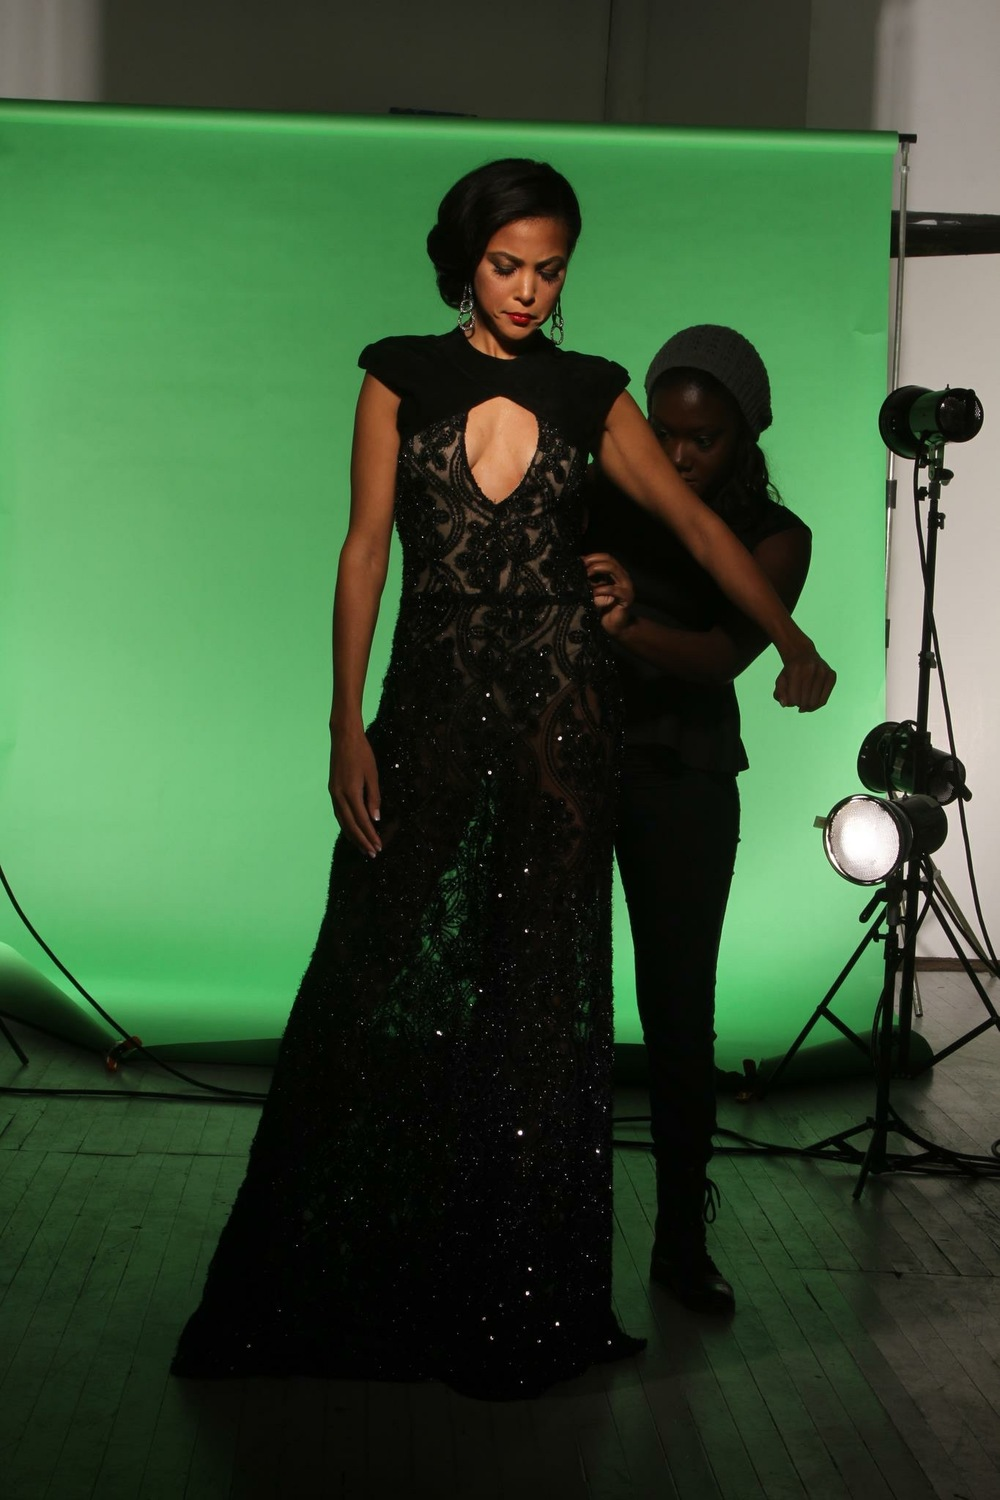 Bell-Price styling for a photoshoot.